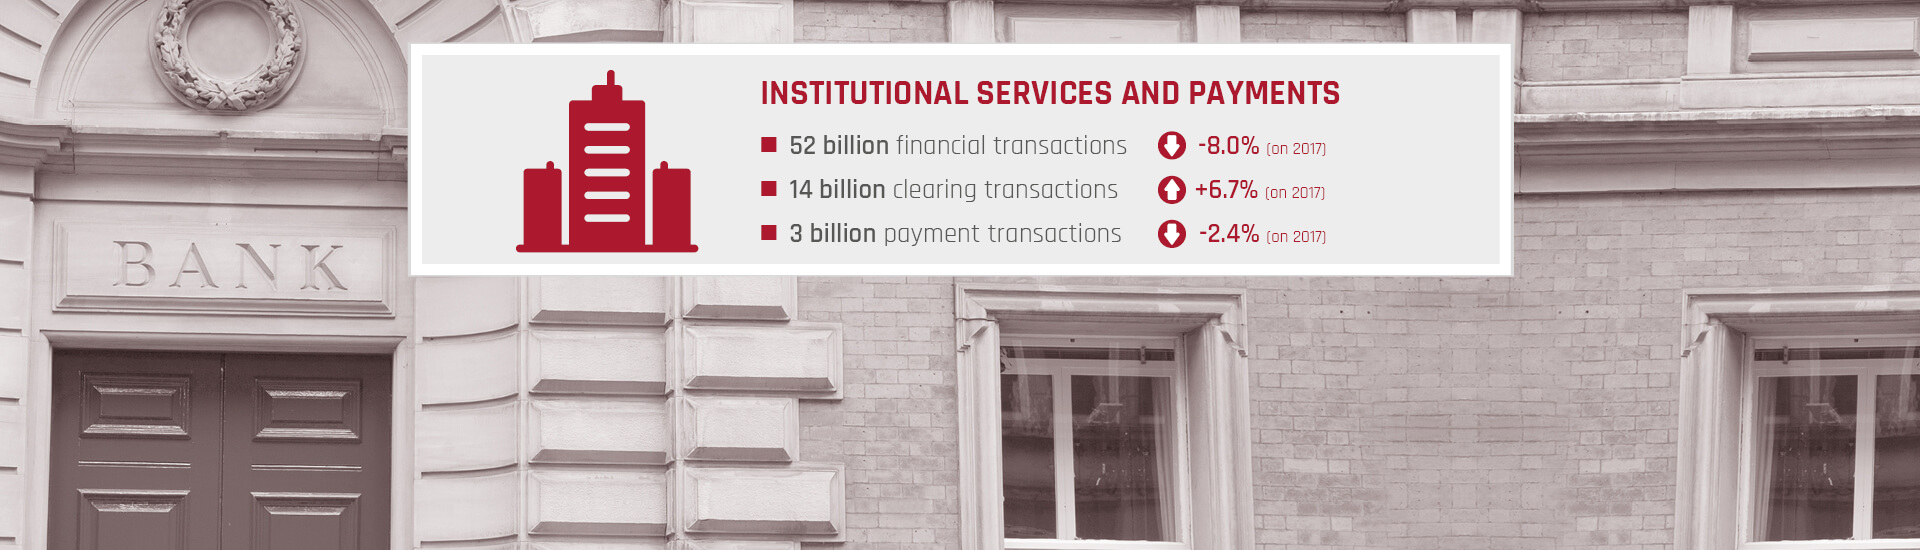 Key Figures 2018 Institutional Services and Payments